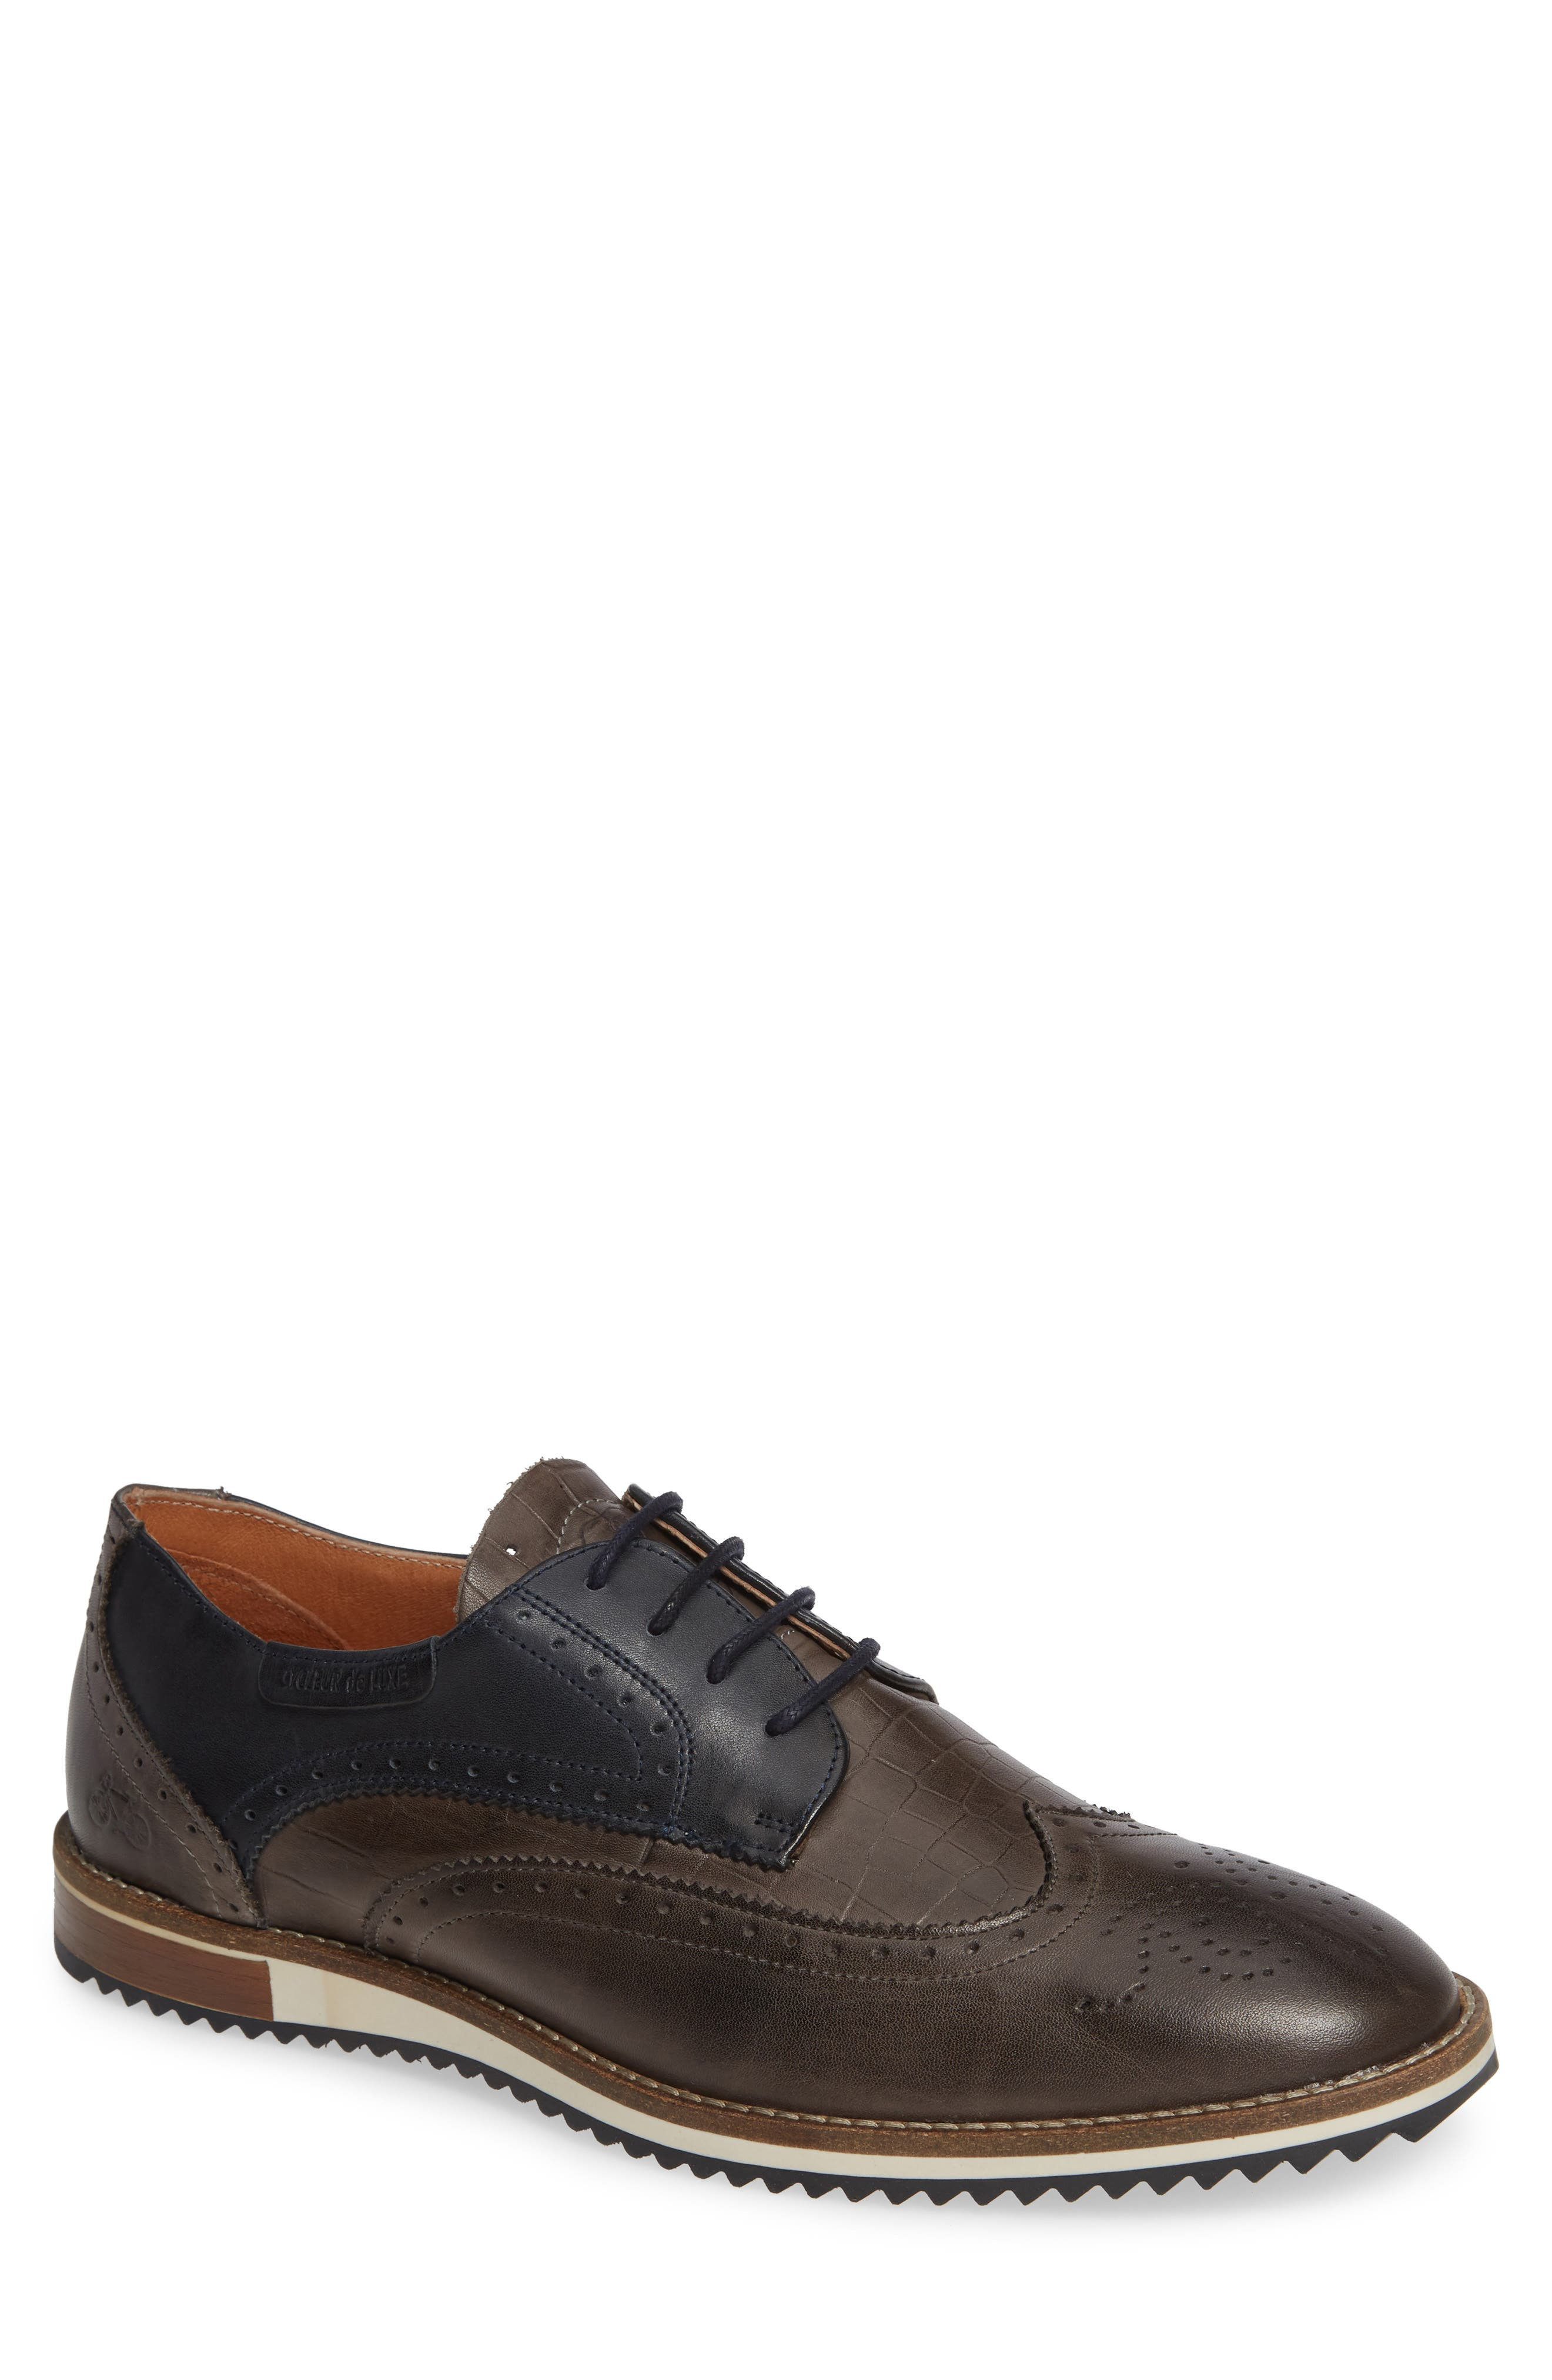 Pulsano Textured Wingtip,                         Main,                         color, ANTHRACITE